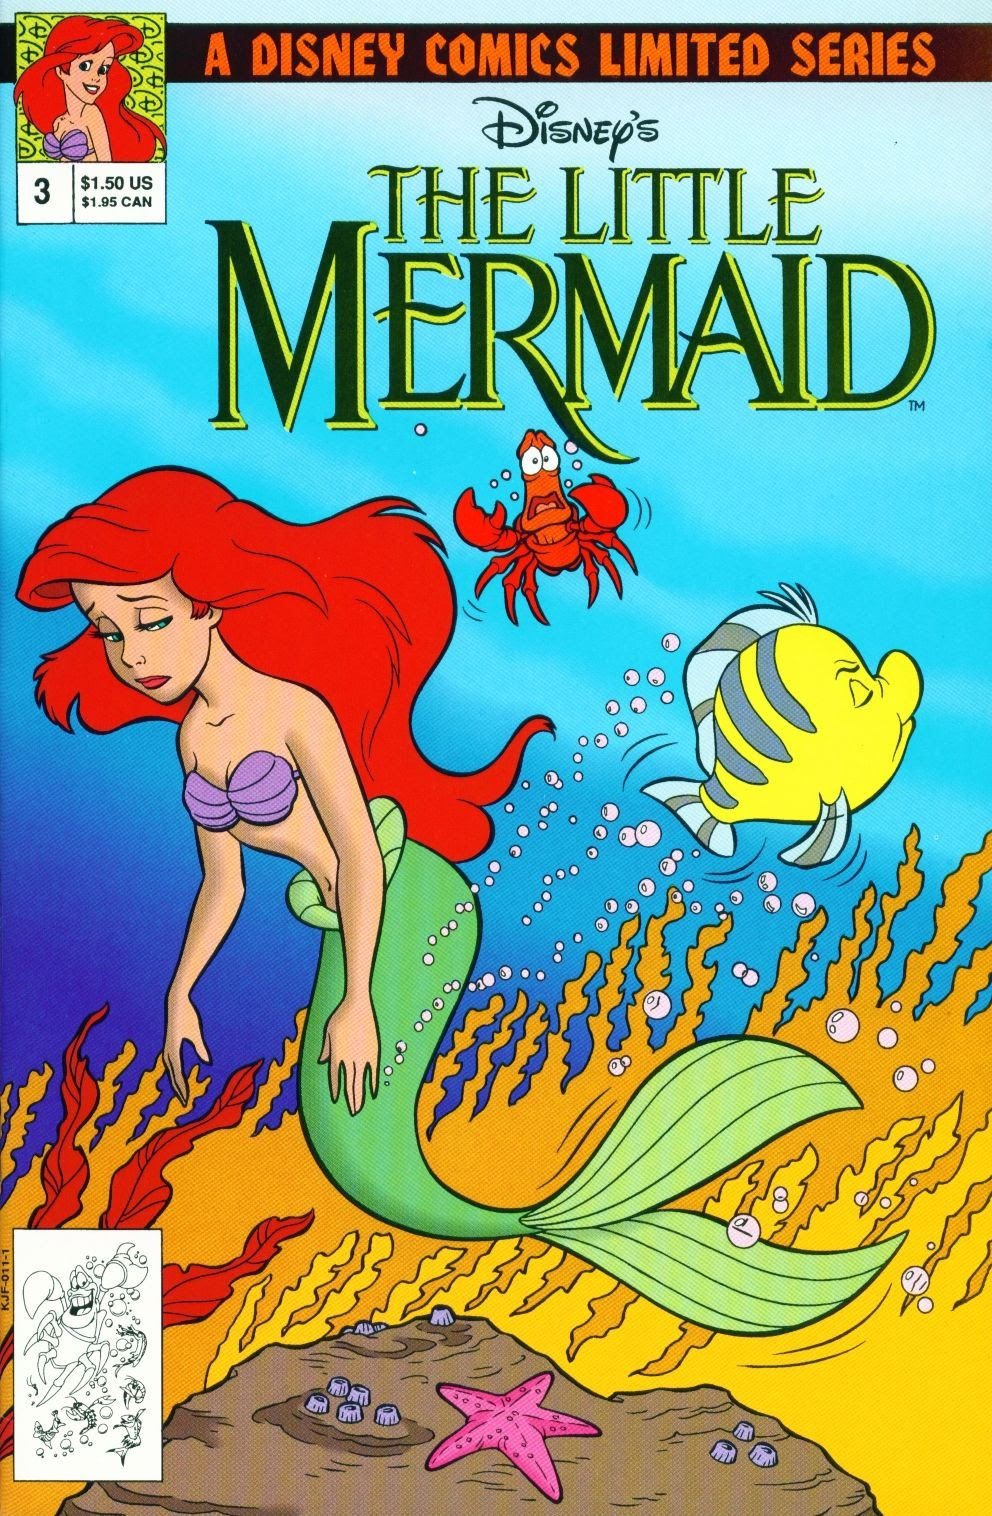 Disneys The Little Mermaid Limited Series 3 Page 1